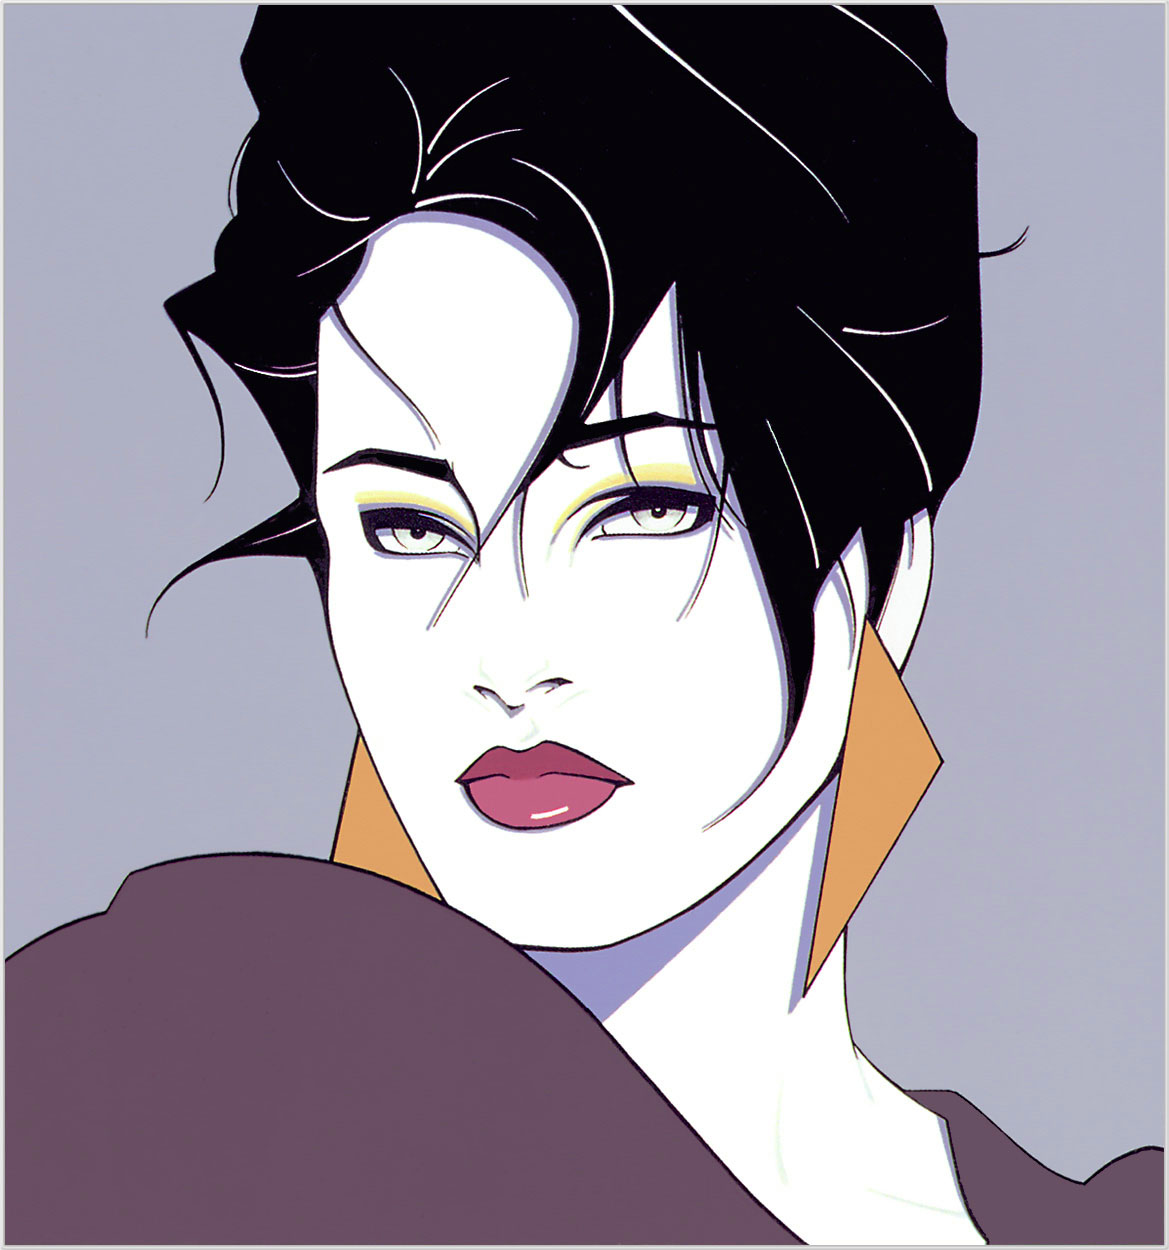 patrick nagel wallpapers art prints wall posters